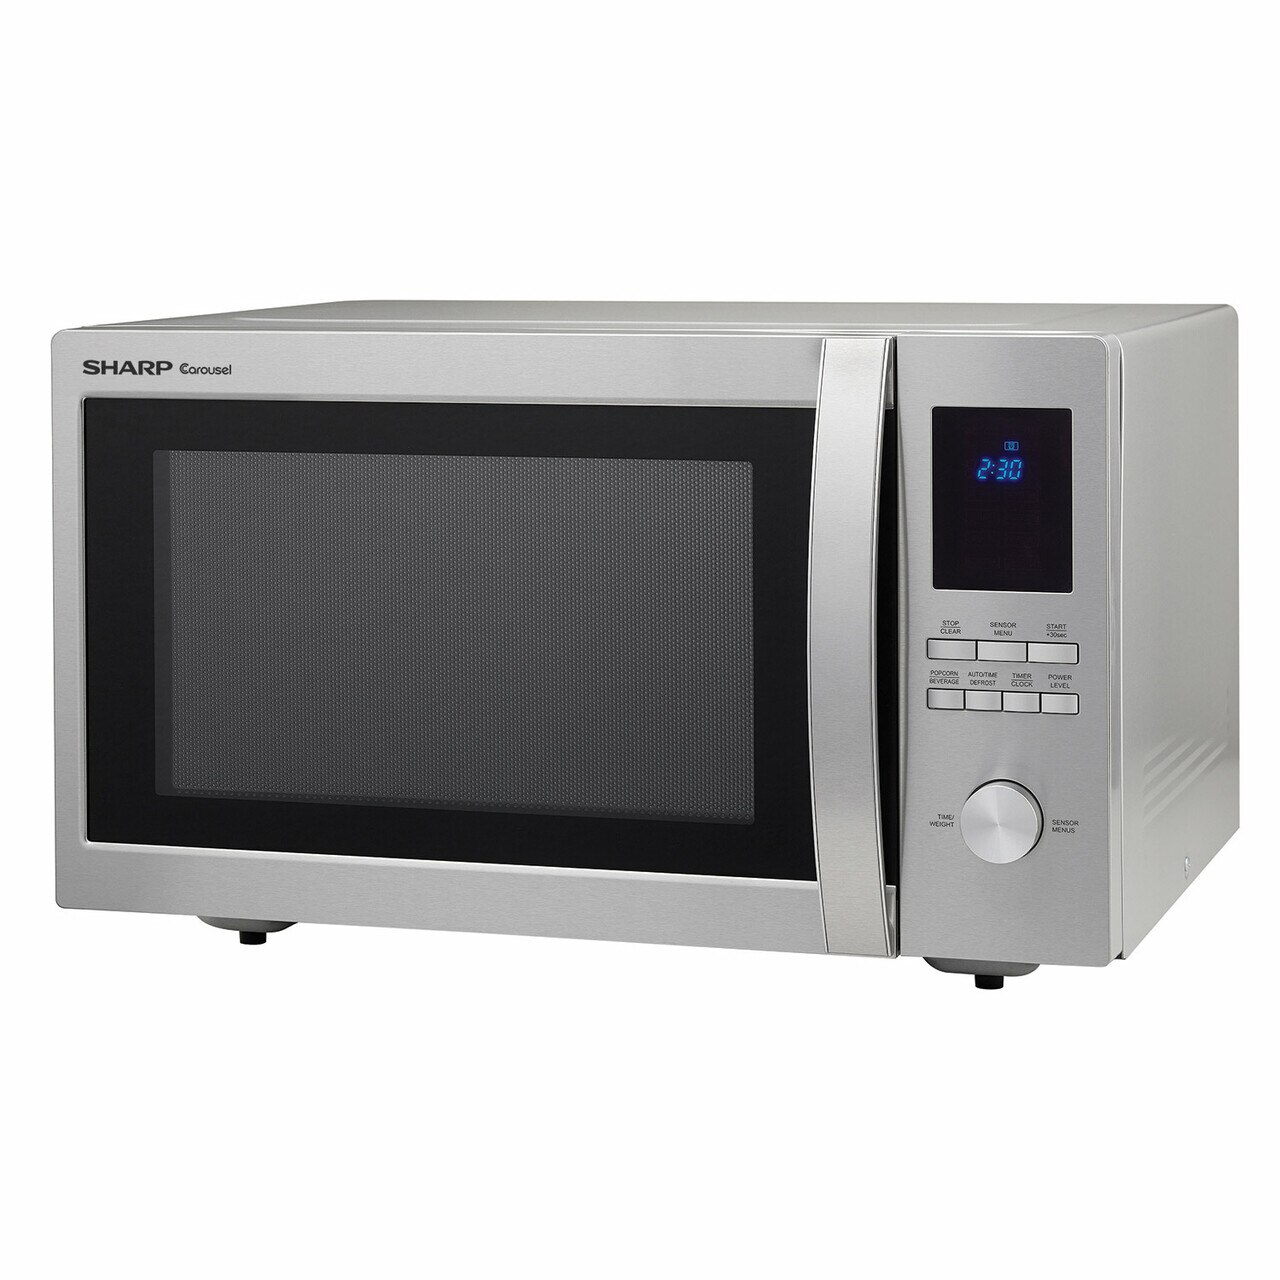 1.6 cu. ft. Sharp Stainless Steel Carousel Countertop Microwave (SMC1655BS) – left angle view